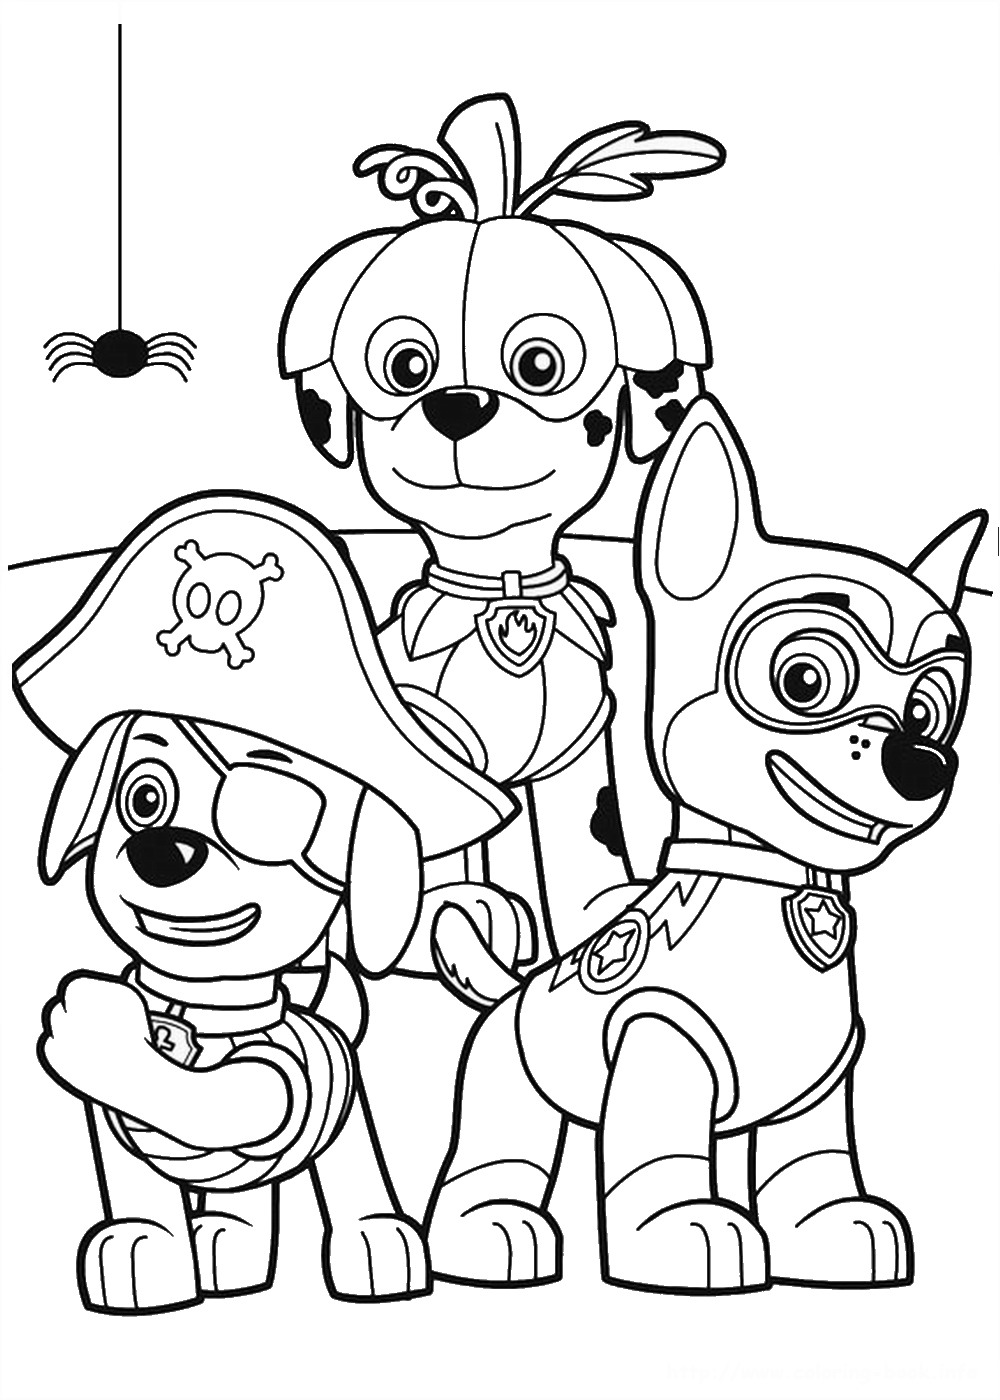 paw patrol coloring pages paw patrol coloring pages coloring home patrol pages coloring paw